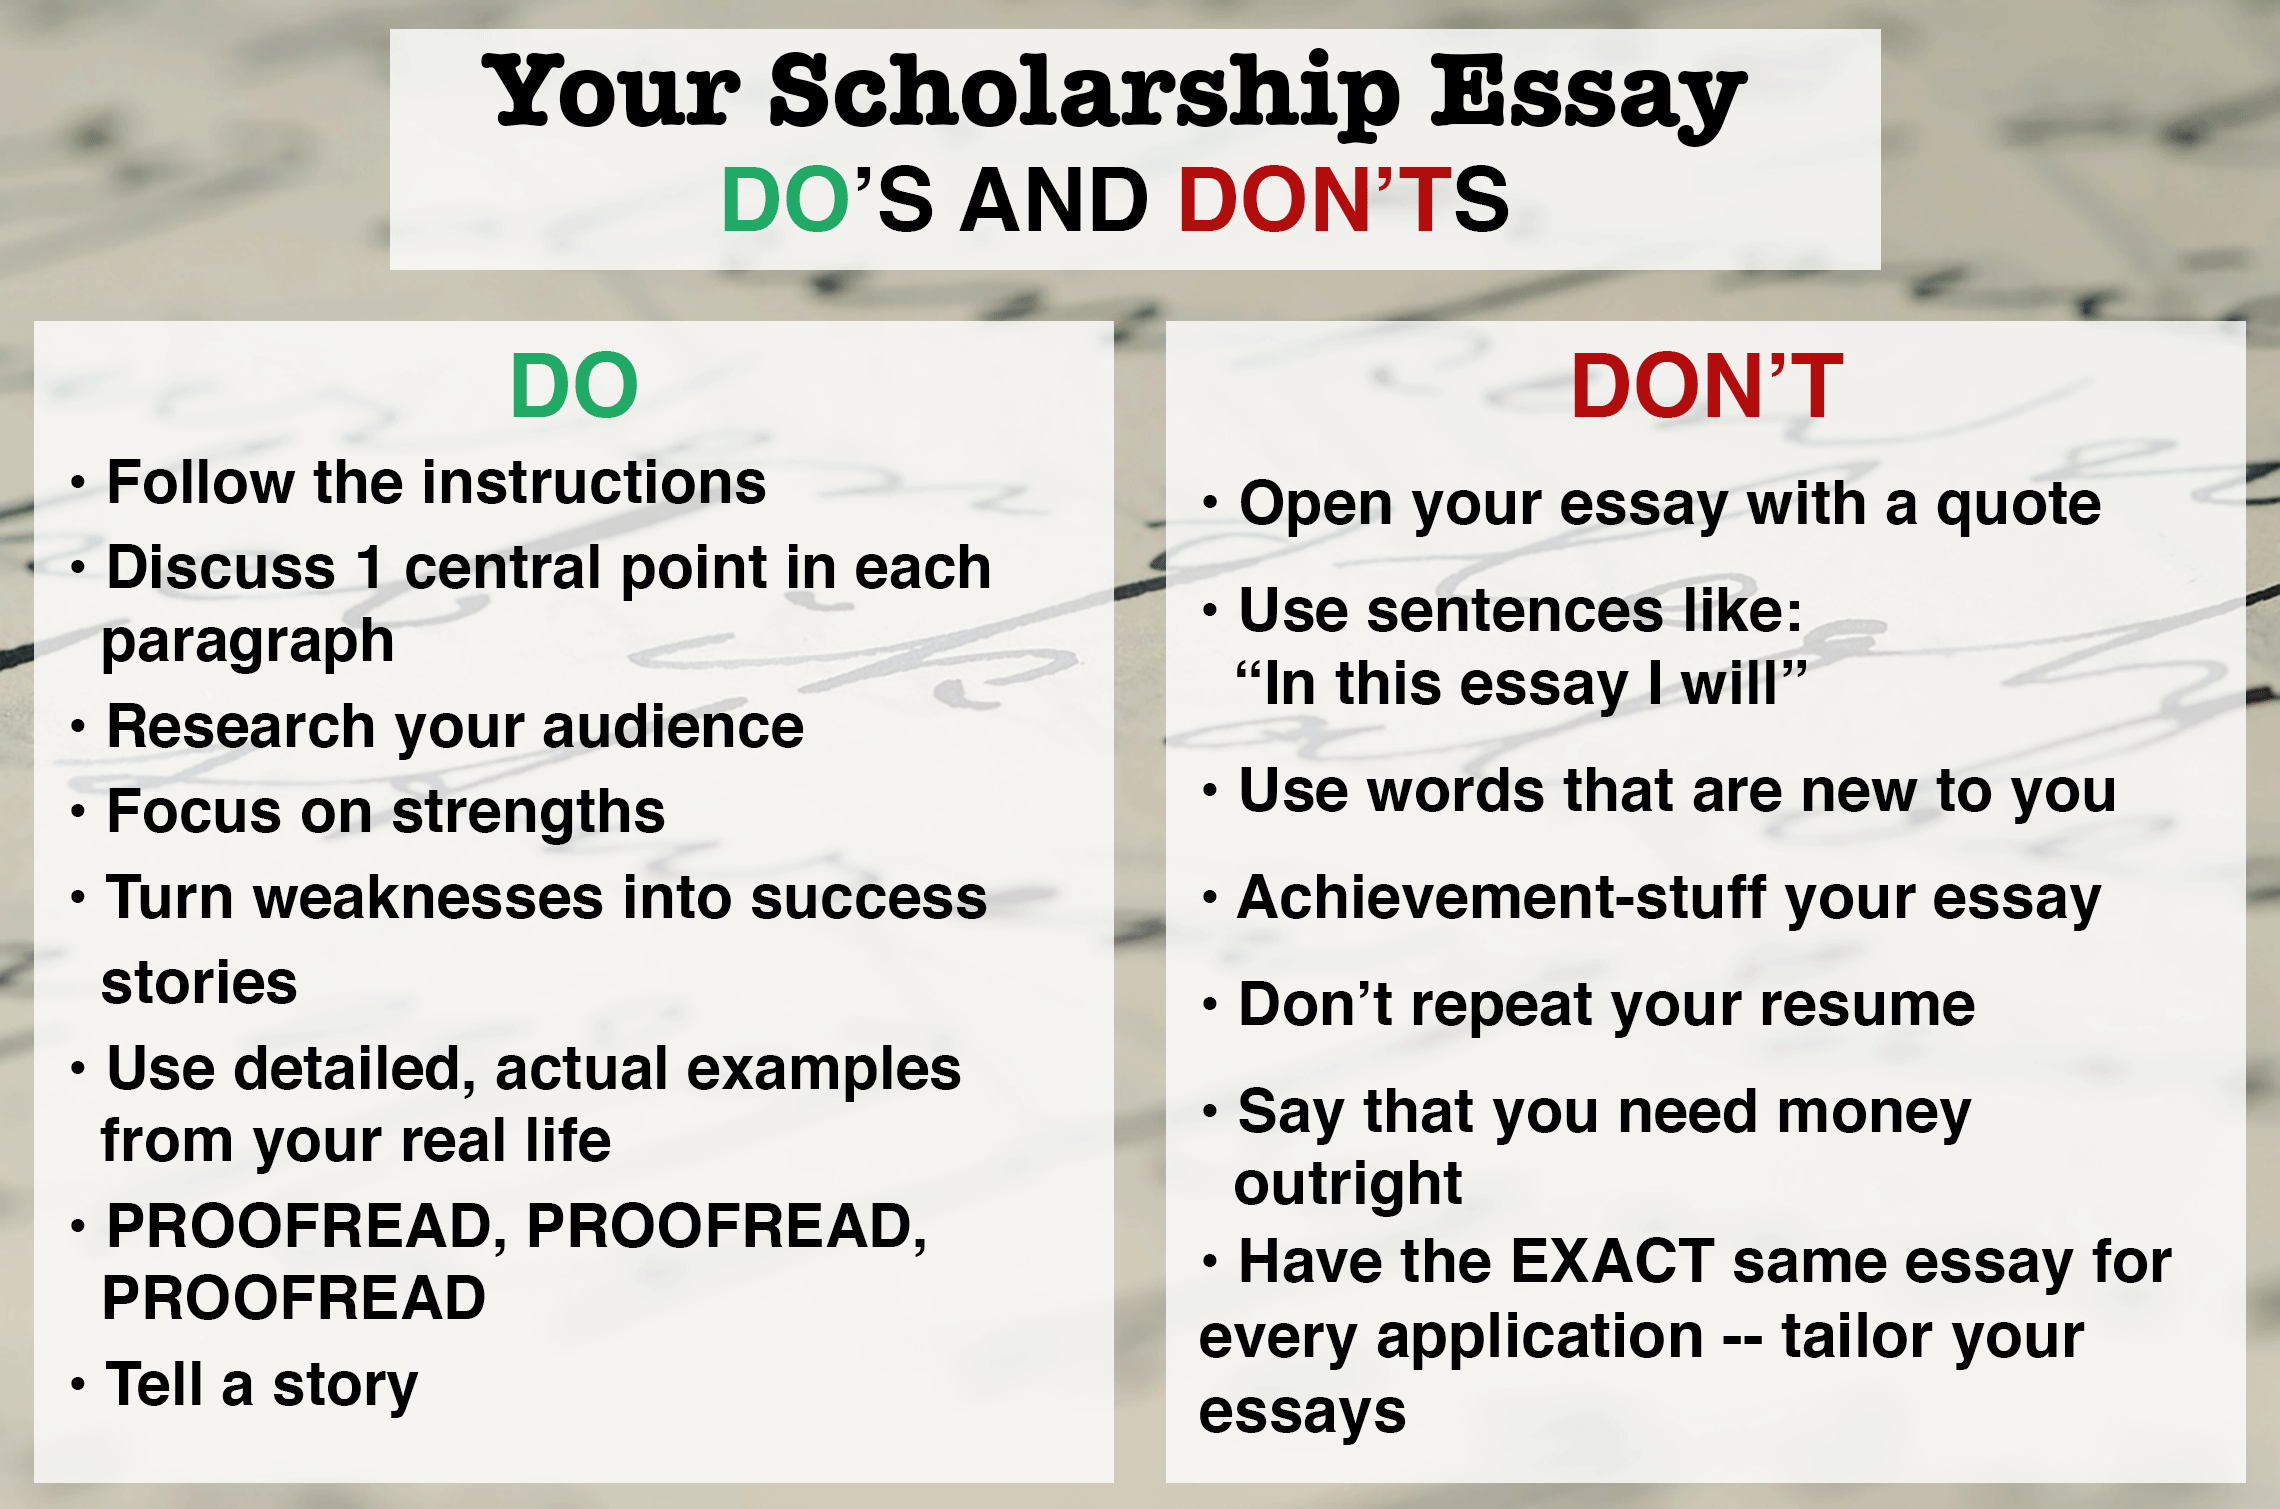 "meaning of scholarship essay Common scholarship essay questions and how to handle them sources: hadad r (2009) ""common essay questions and how to handle them"" fastweb."